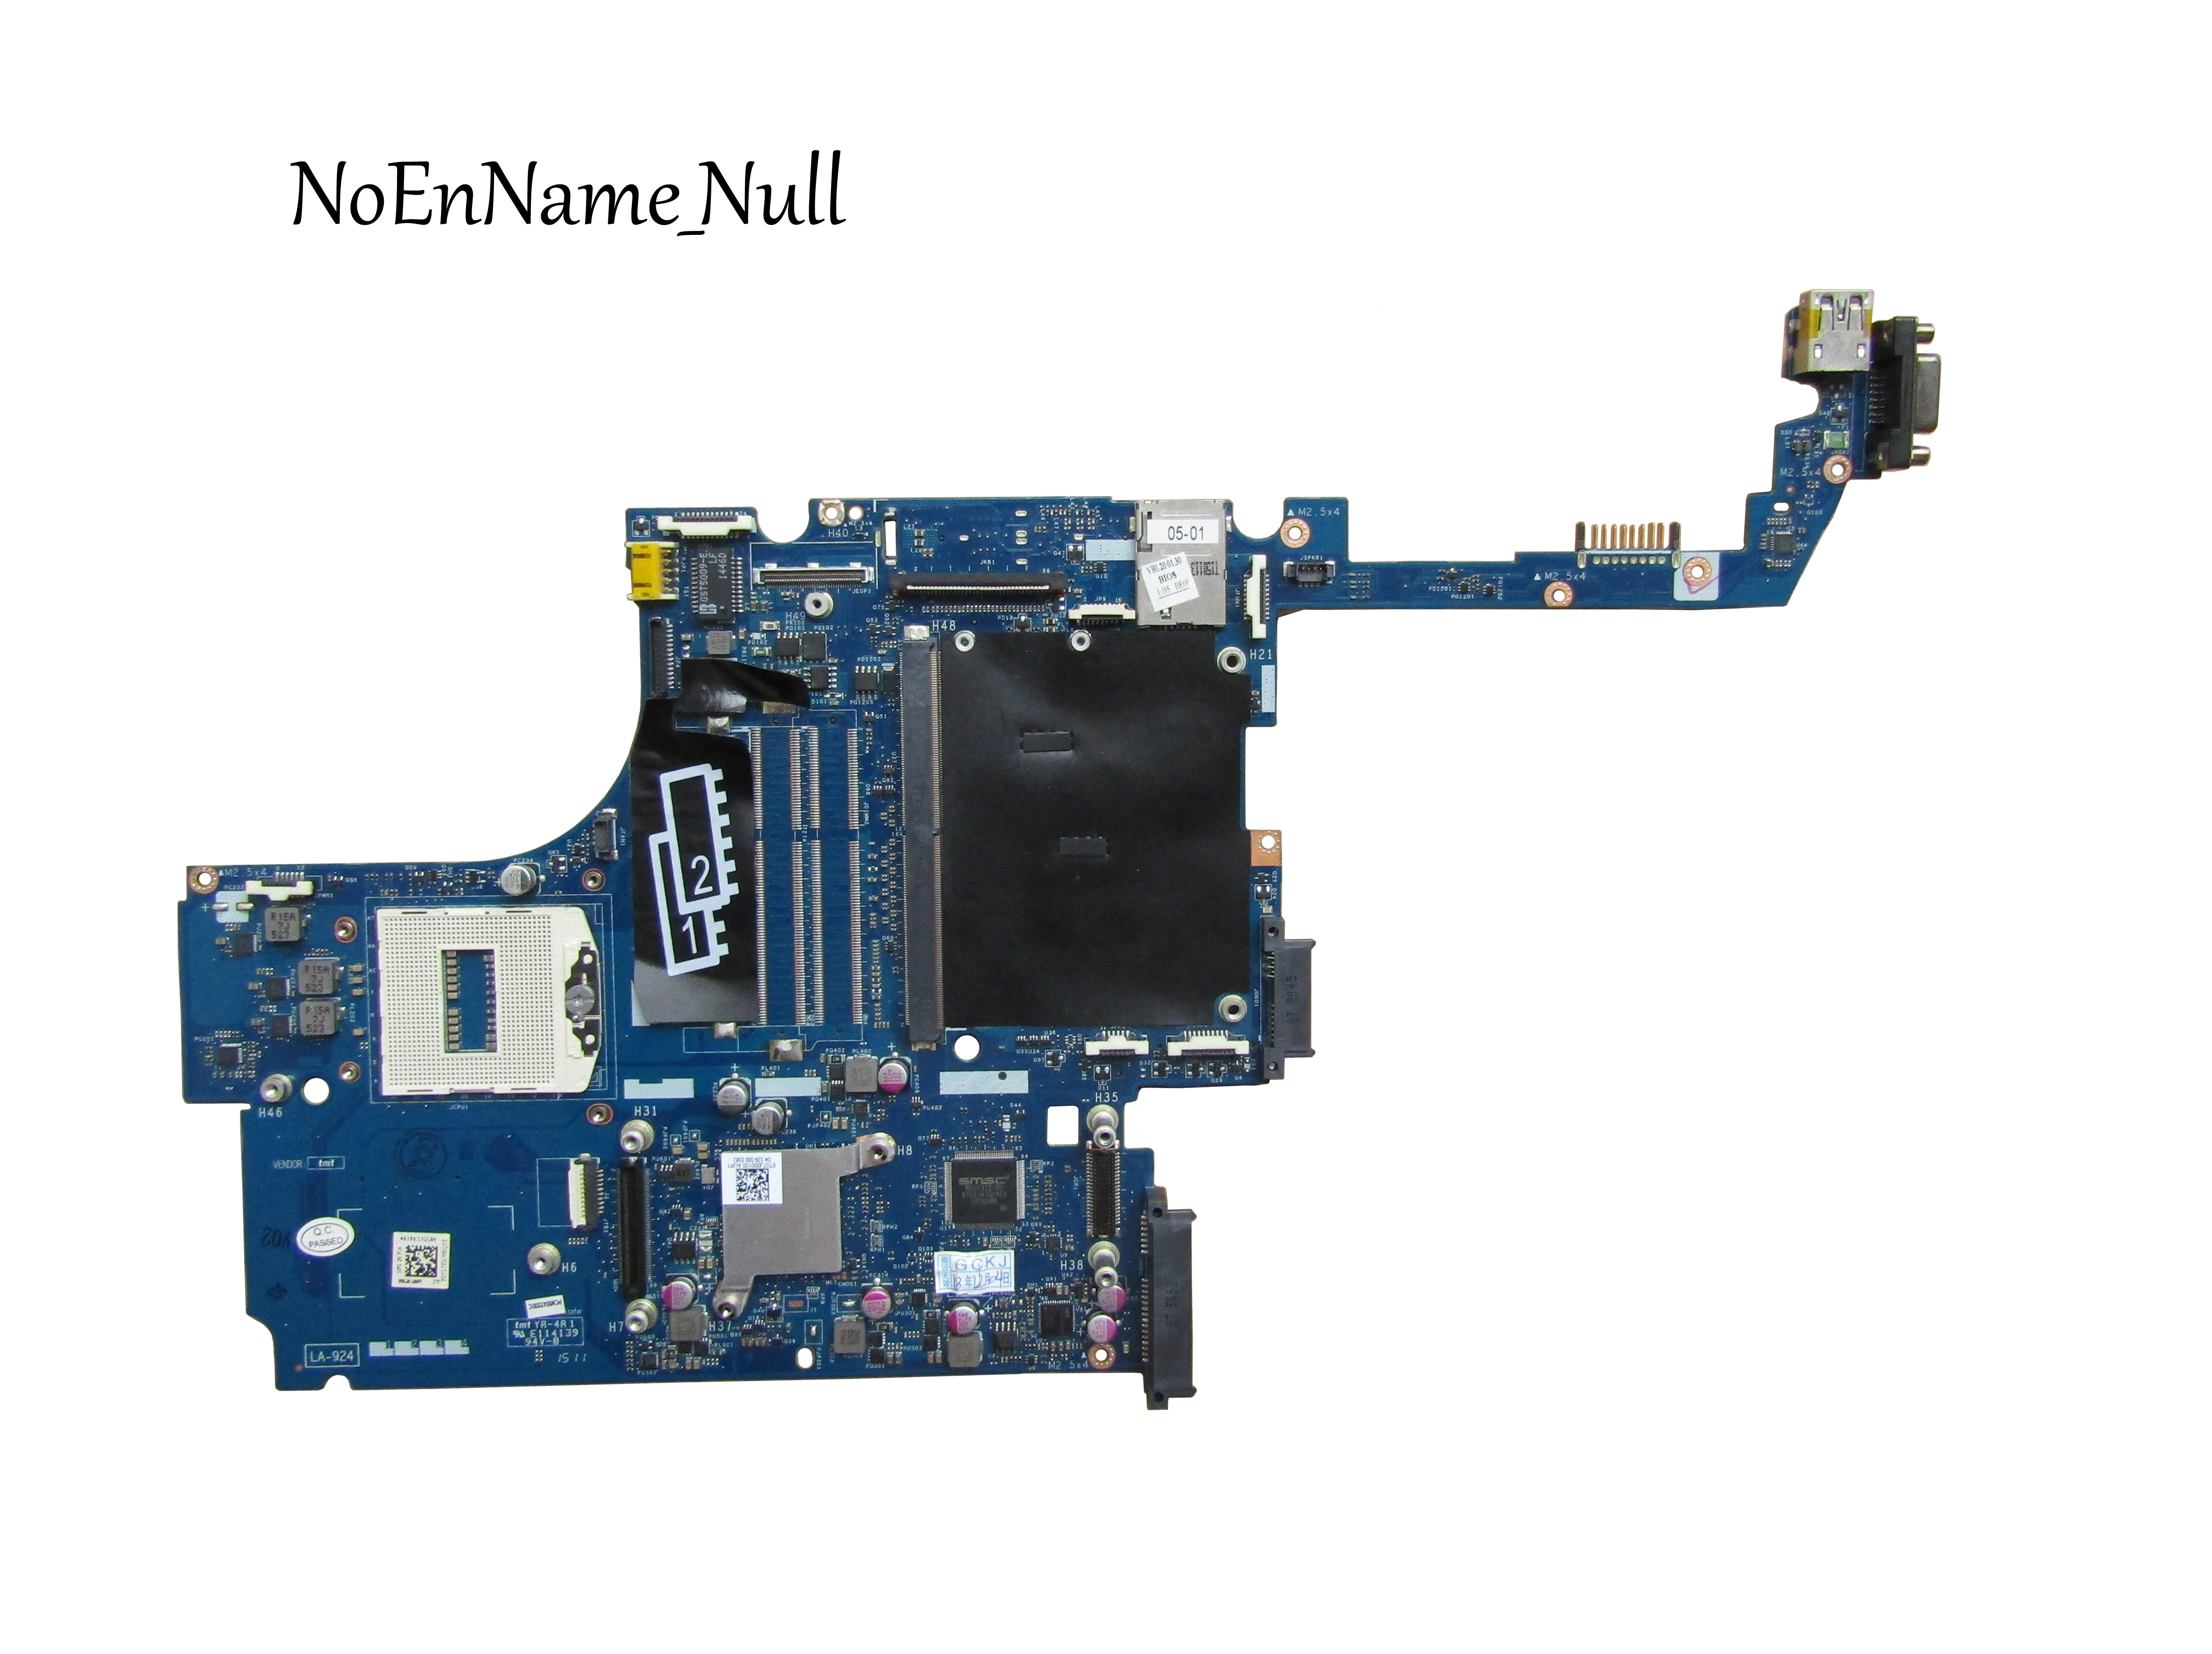 734303-601 Free shipping for HP ZBook15 15-G1 Dual Core Motherboard 734303-001 734303-501 all tested well734303-601 Free shipping for HP ZBook15 15-G1 Dual Core Motherboard 734303-001 734303-501 all tested well